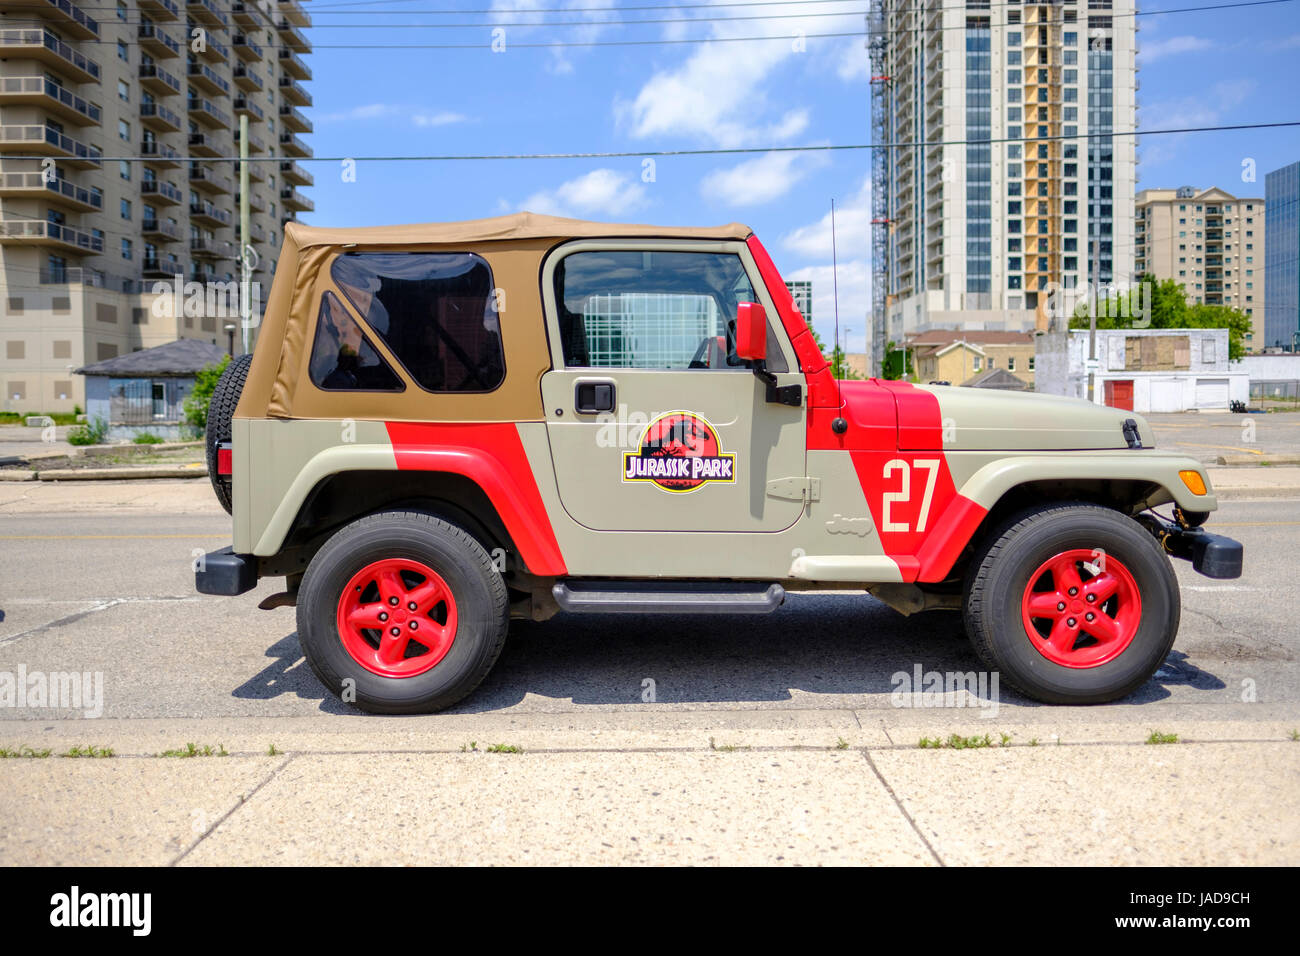 considering get a that and sale jeep most no jurassic recognizable the surprise it only film park featured for relative actually of s to tv really island pair vehicles blog jeeps difficulty from